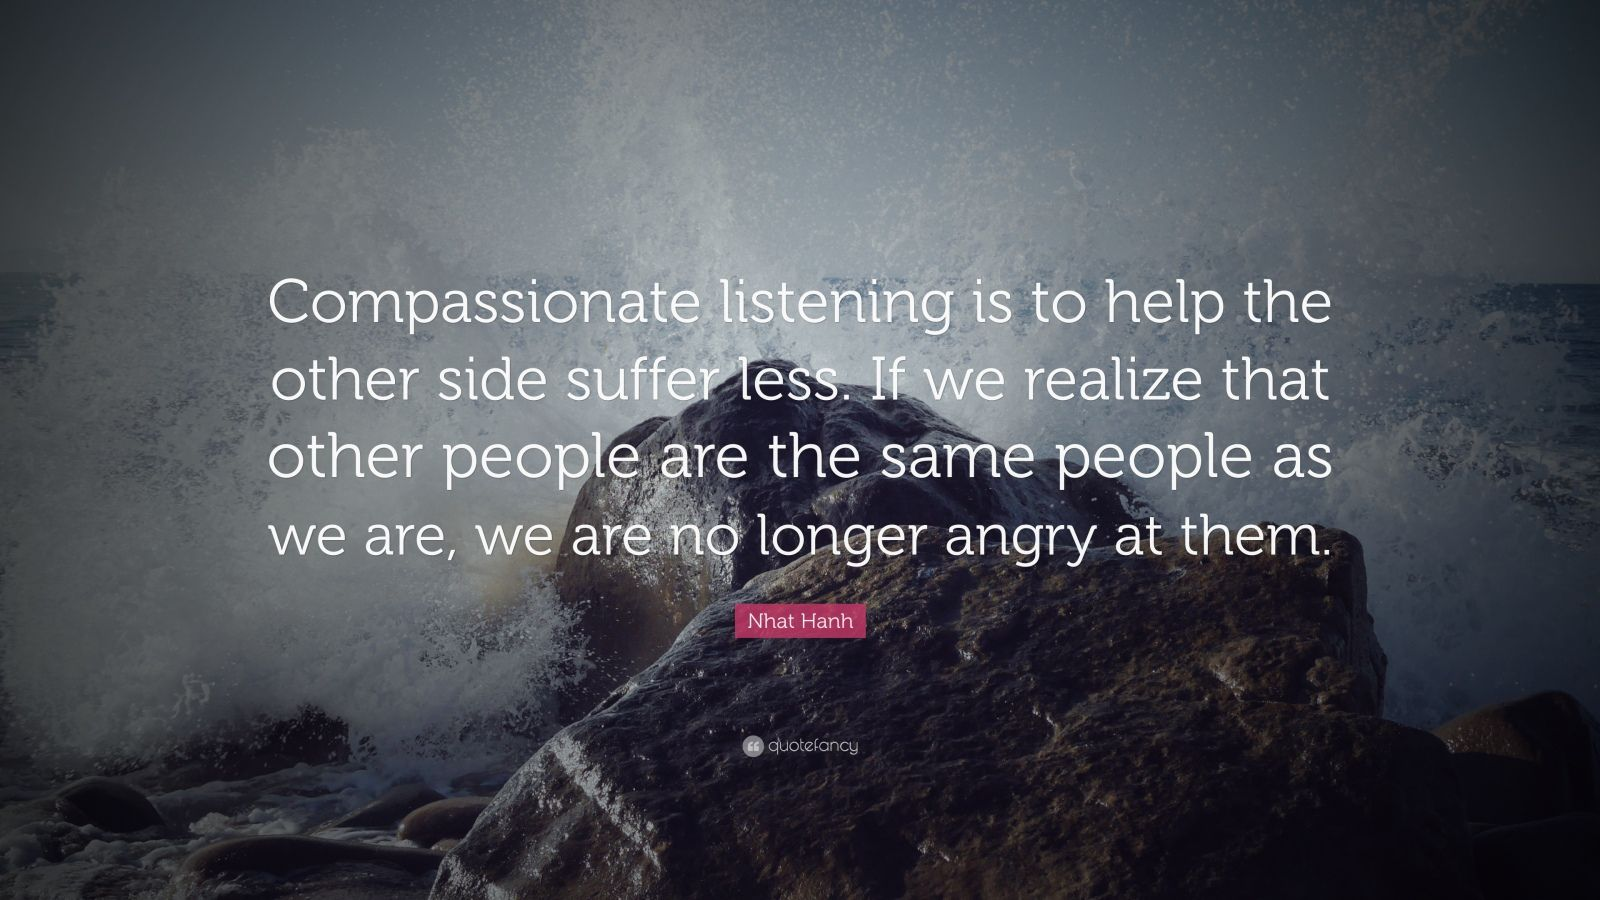 """Nhat Hanh Quote: """"Compassionate listening is to help the other side suffer less. If we realize that other people are the same people as we are, we are no longer angry at them."""""""